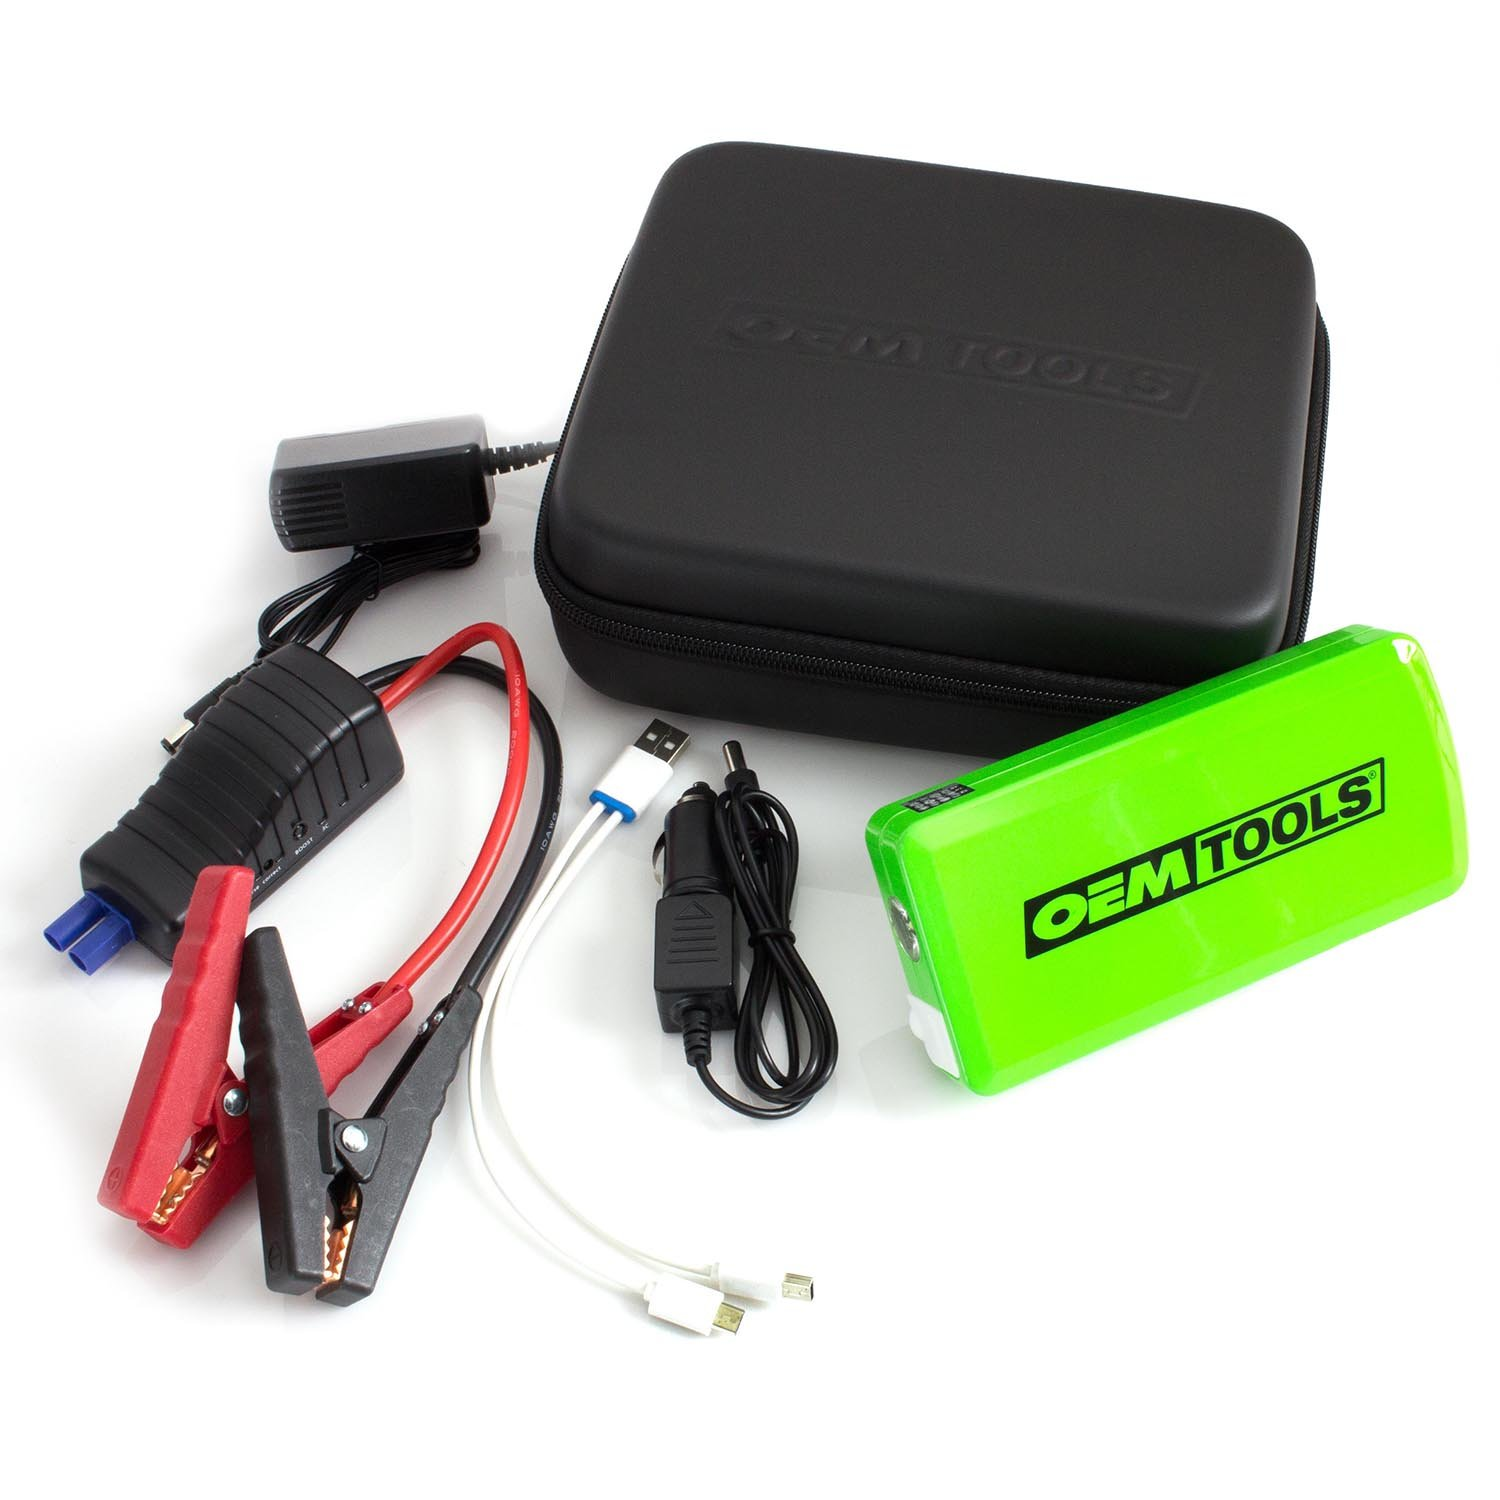 OEMTOOLS 24370 PPS Portable Personal Power Source with Jumper Cables